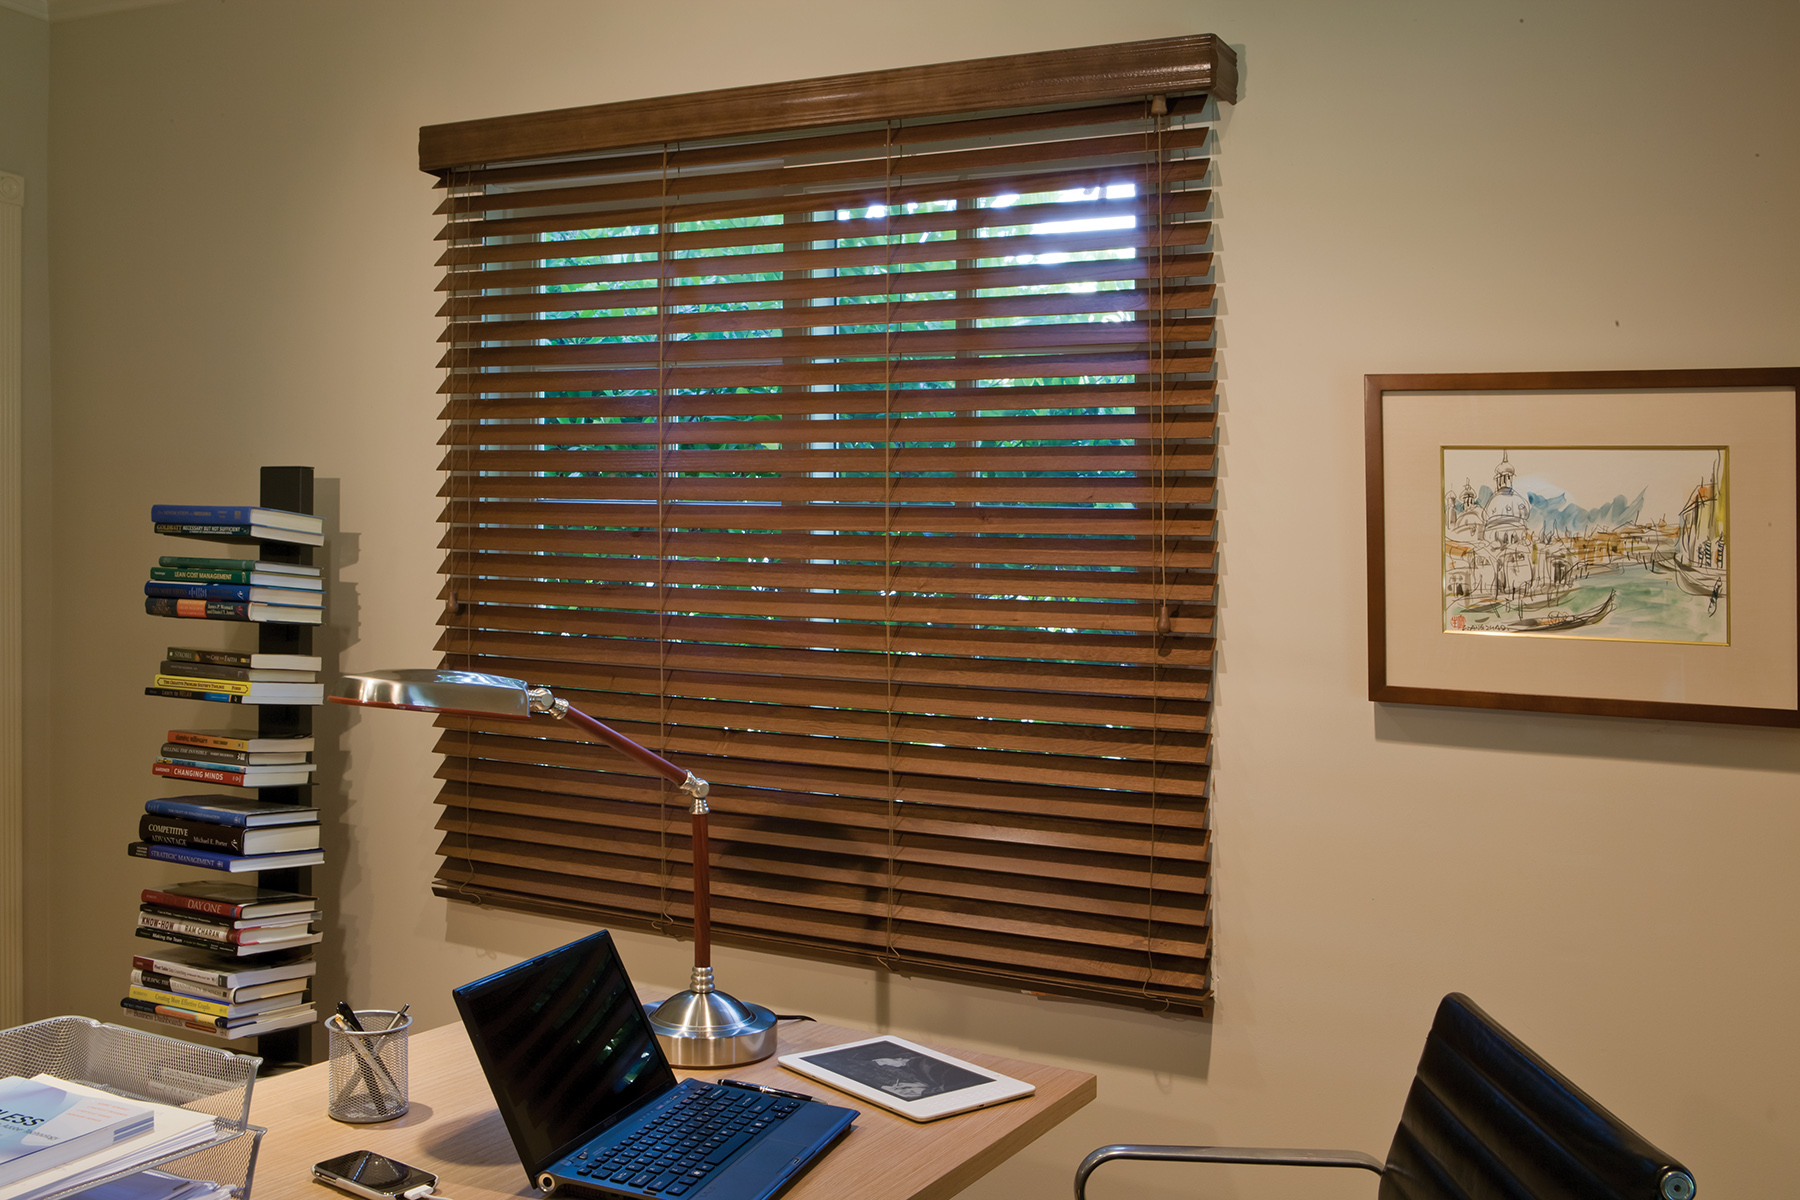 blinds window blind windows utah peach building lake wood